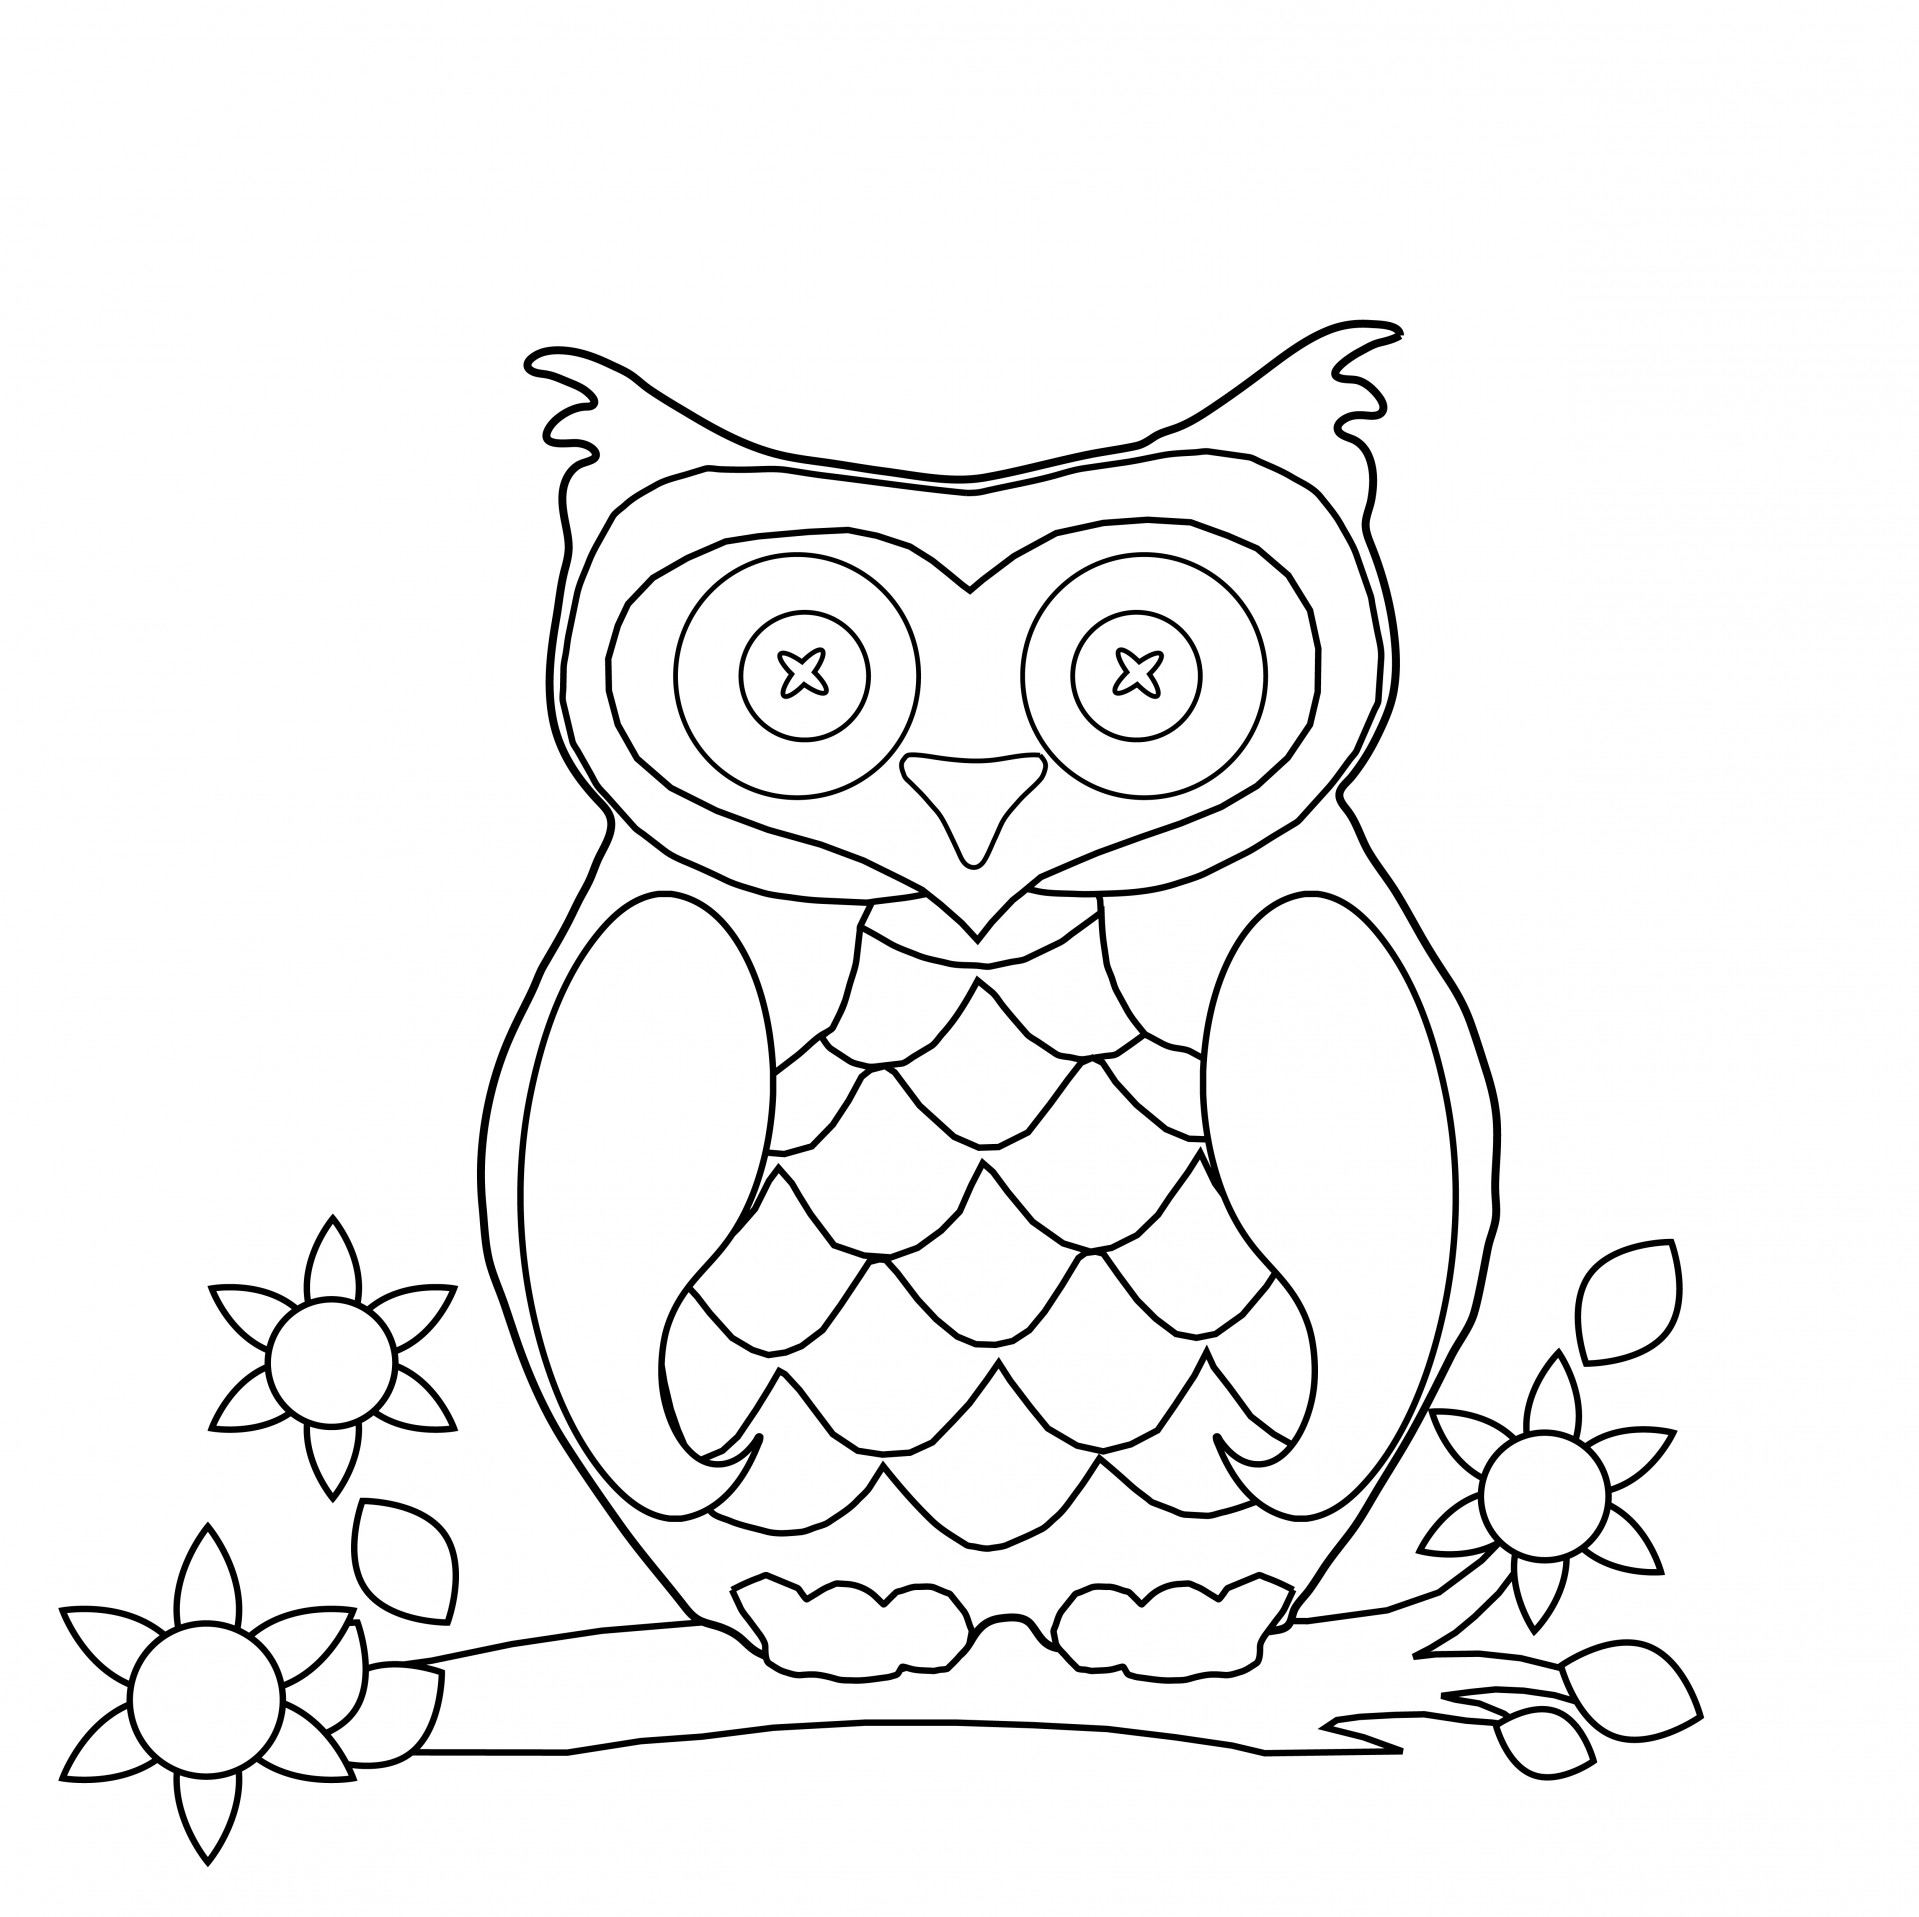 coloring pictures to color for kids free printable ocean coloring pages for kids kids pictures color for to coloring